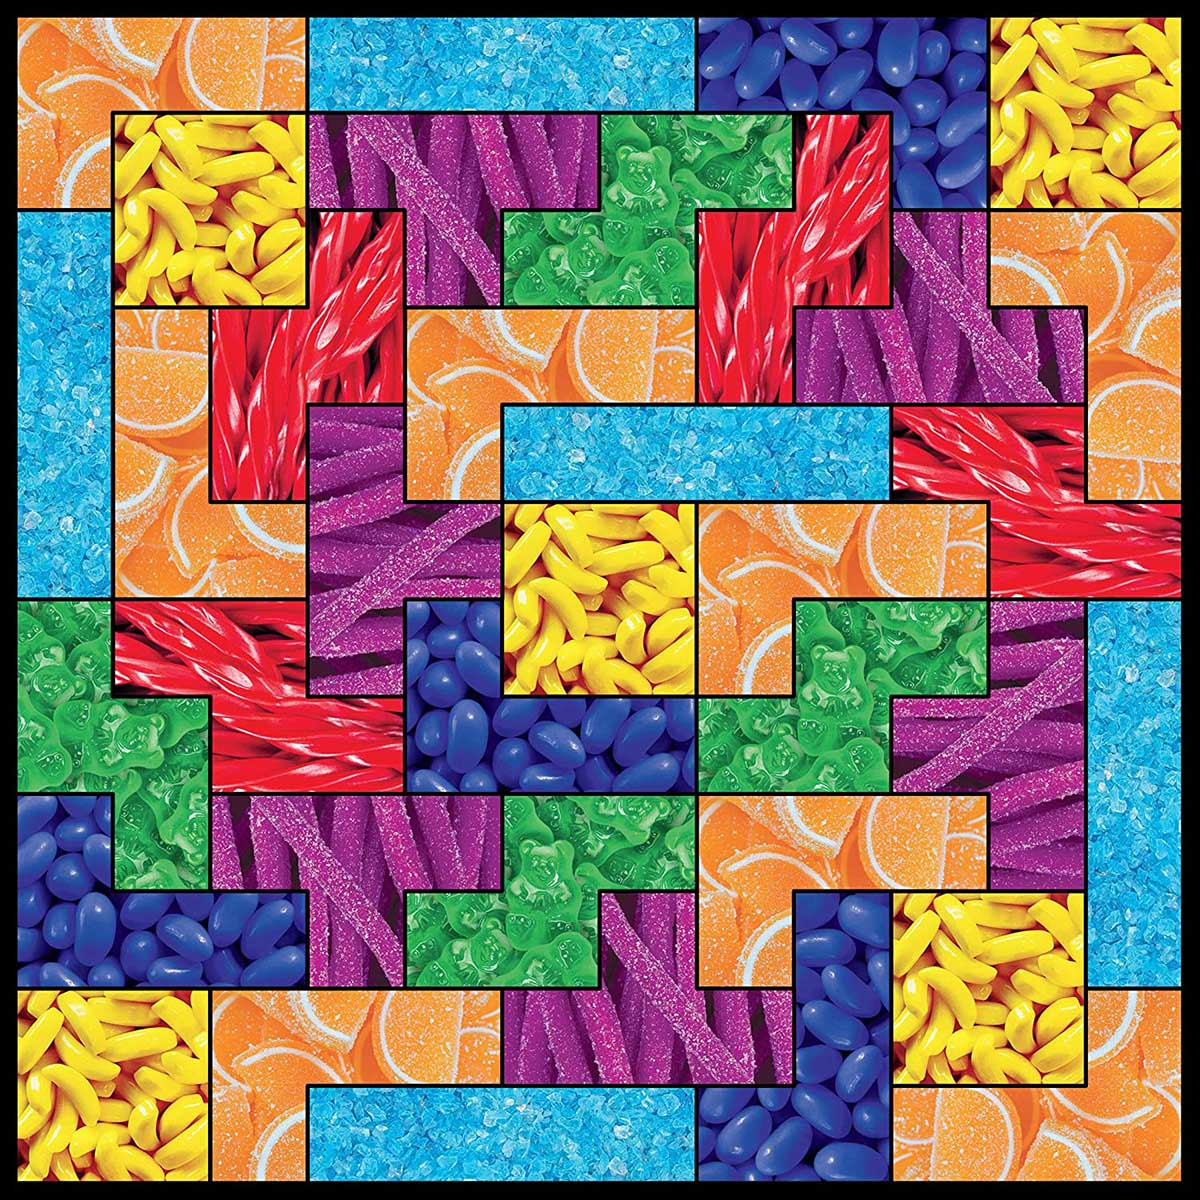 Candy Sweets Jigsaw Puzzle